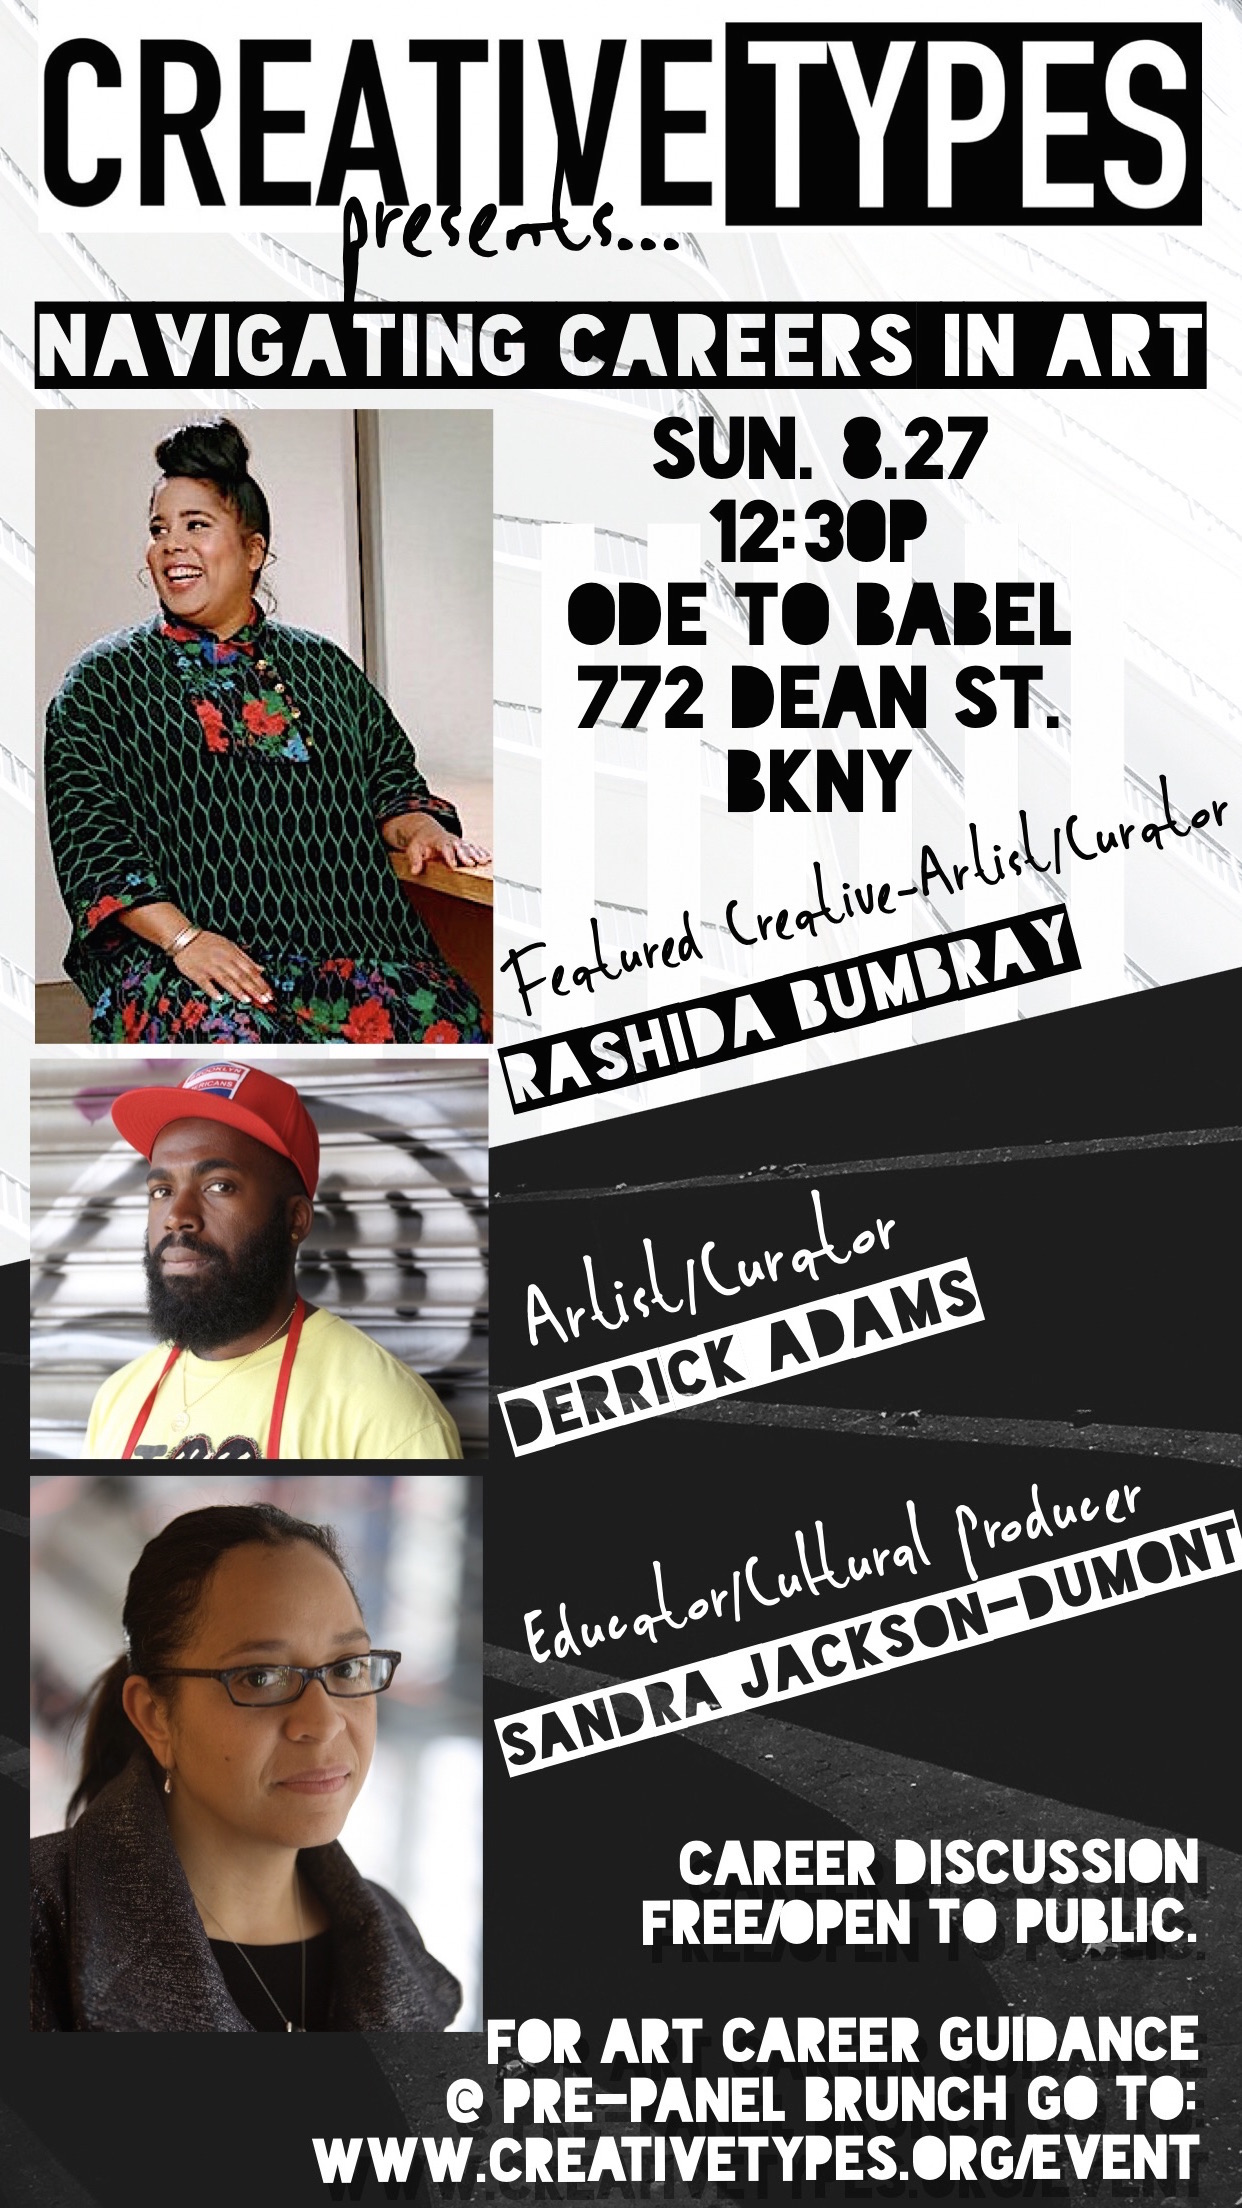 Join us for a live connection opportunity with Artist/Curator,   Rashida Bumbray   (April featured creative) along with Artist/Curator,   Derrick Adams   & Art Educator/Cultural Producer,   Sandra Jackson-Dumont  .   Sun. Aug 27, 2017    12:30p SHARP @ Ode to Babel    772 Dean St. Brooklyn, NY 11238     TICKETS ARE NOW SOLD OUT FOR THIS EVENT. PLEASE FOLLOW US ON SOCIAL TO VIEW THE FACEBOOK LIVE STREAM STARTING AT 12:30P EST.